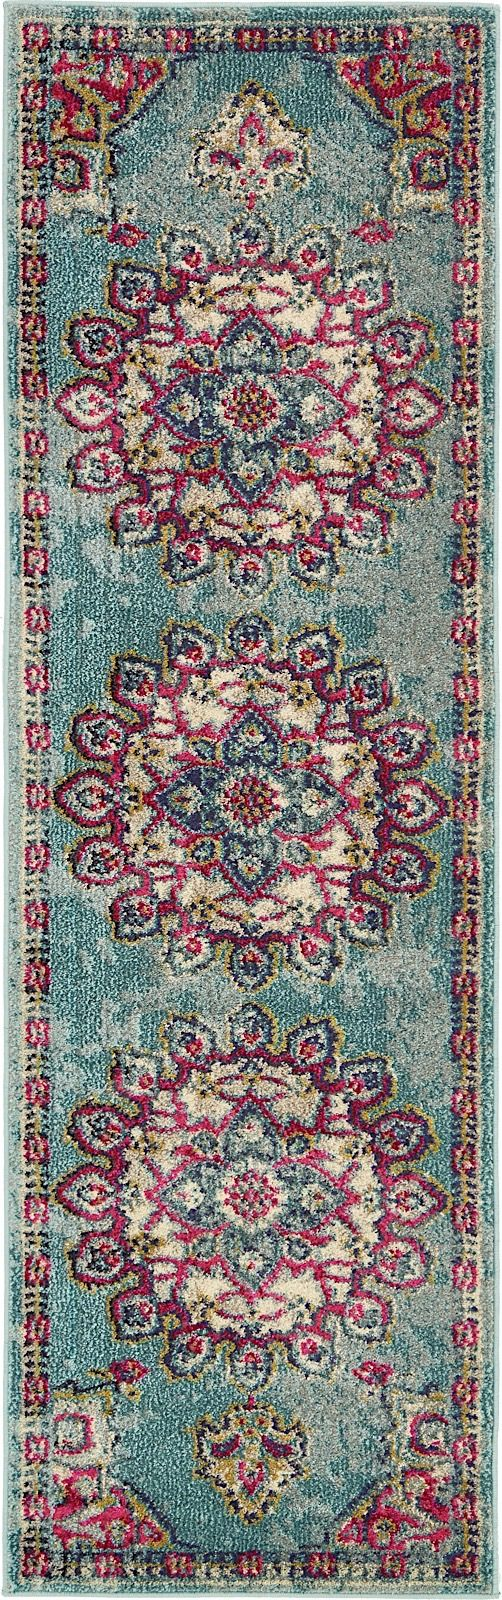 dauphine traditional area rug collection